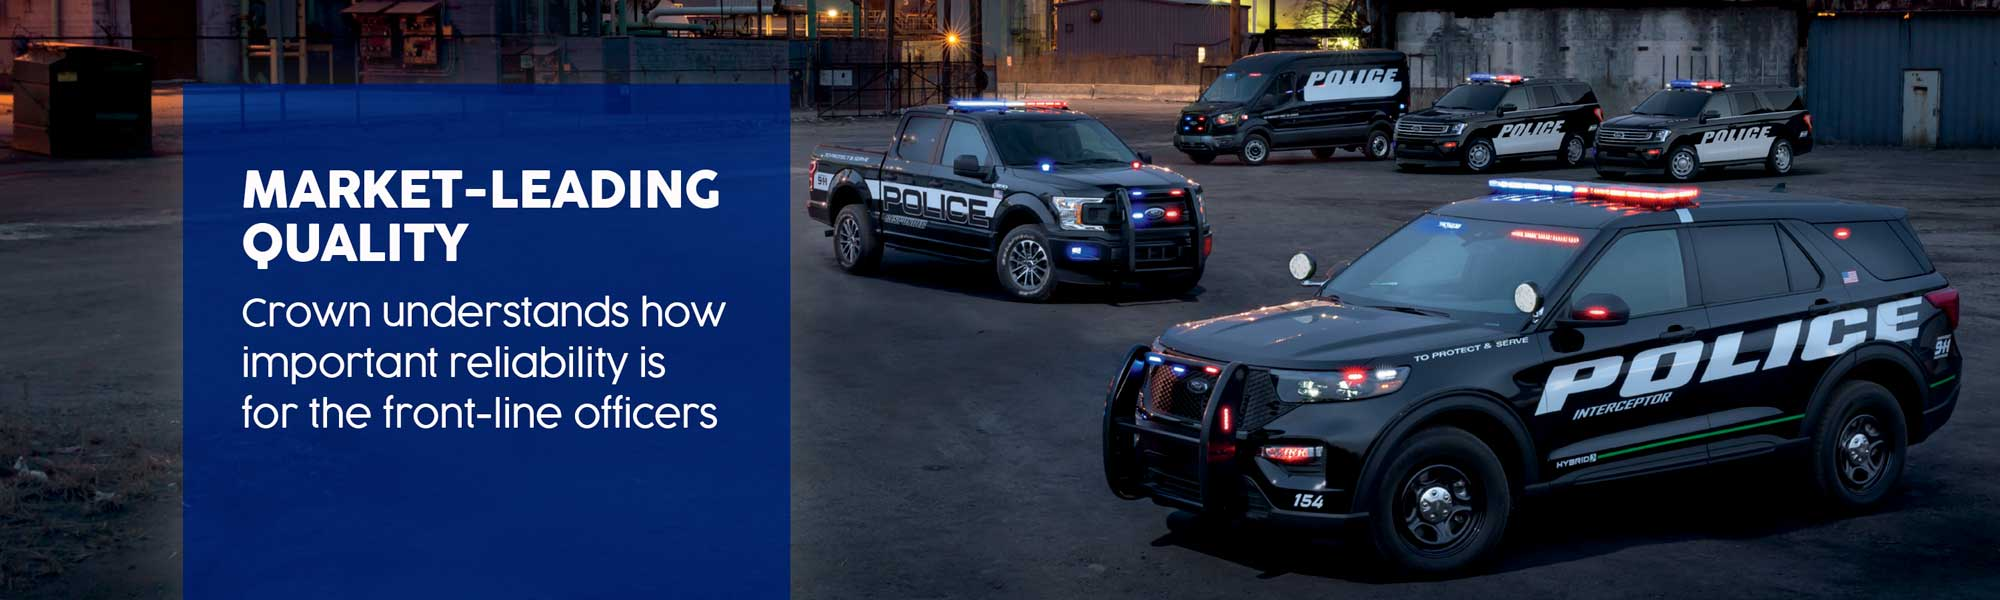 Ford Police Lineup Header